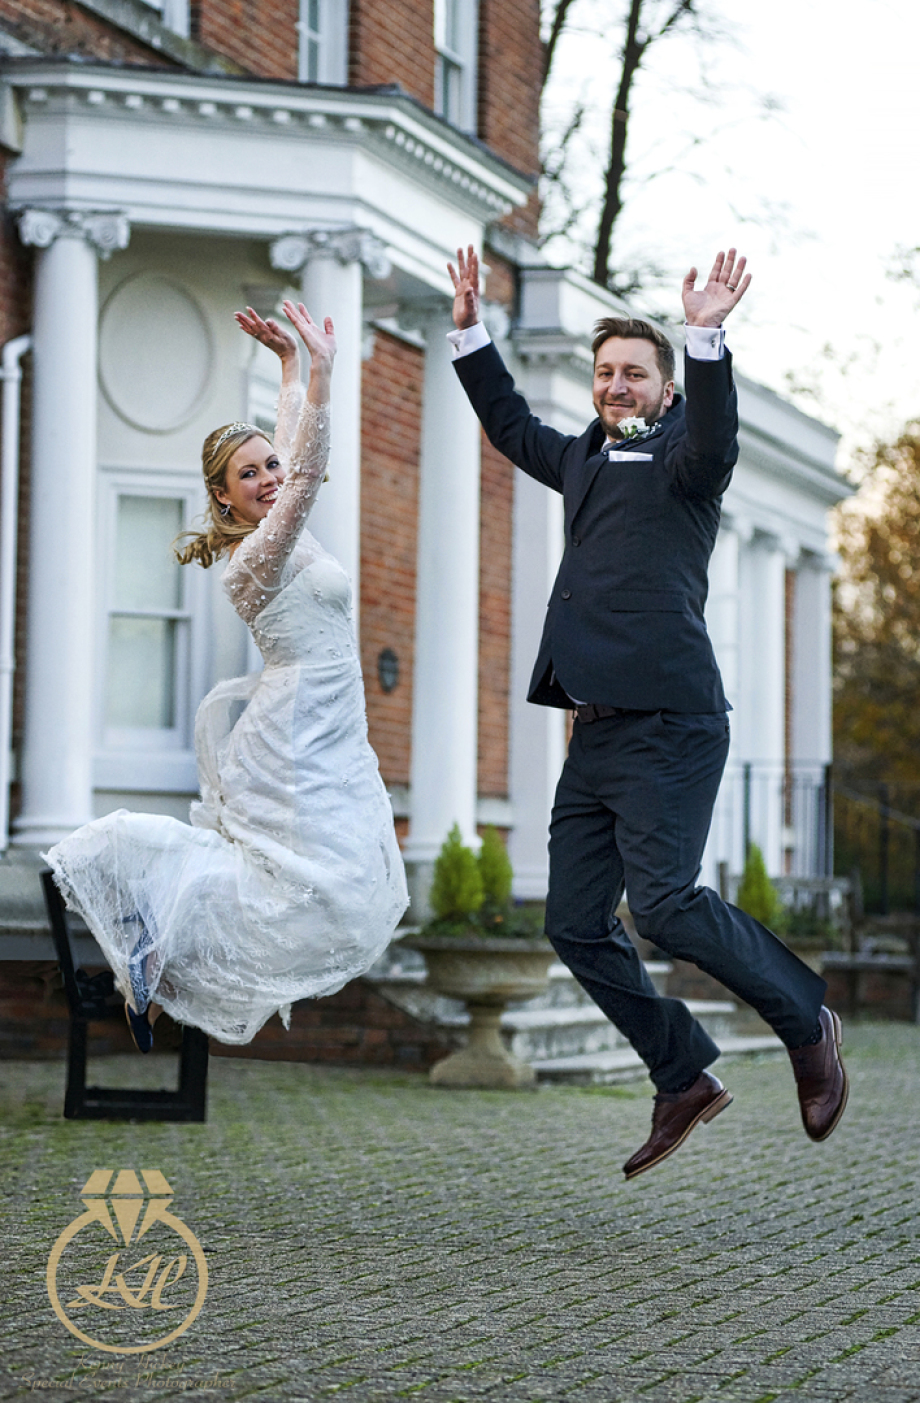 Clare & Darrol, winter wedding, East Court, fun, jumping